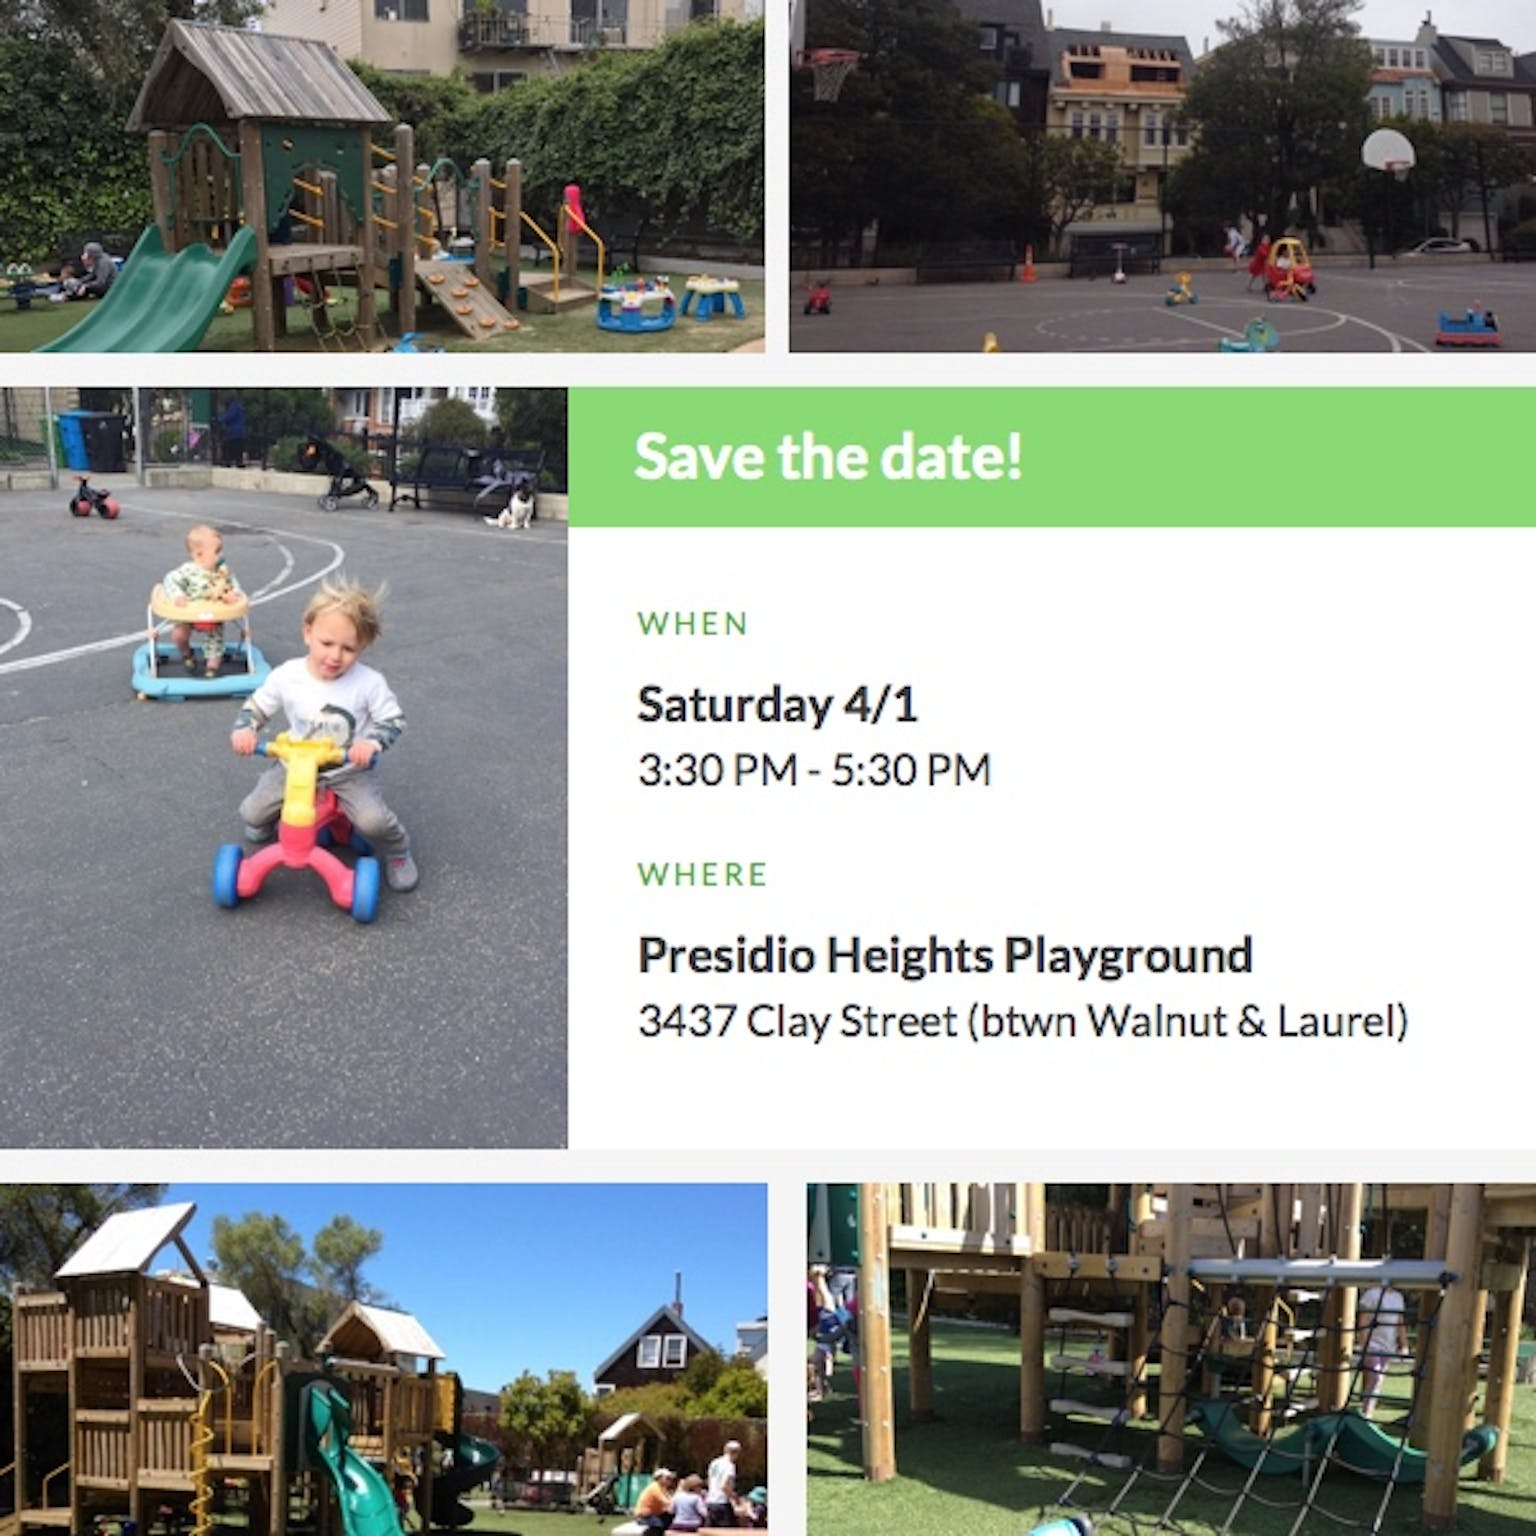 Presidio Heights Playground in San Francisco, CA